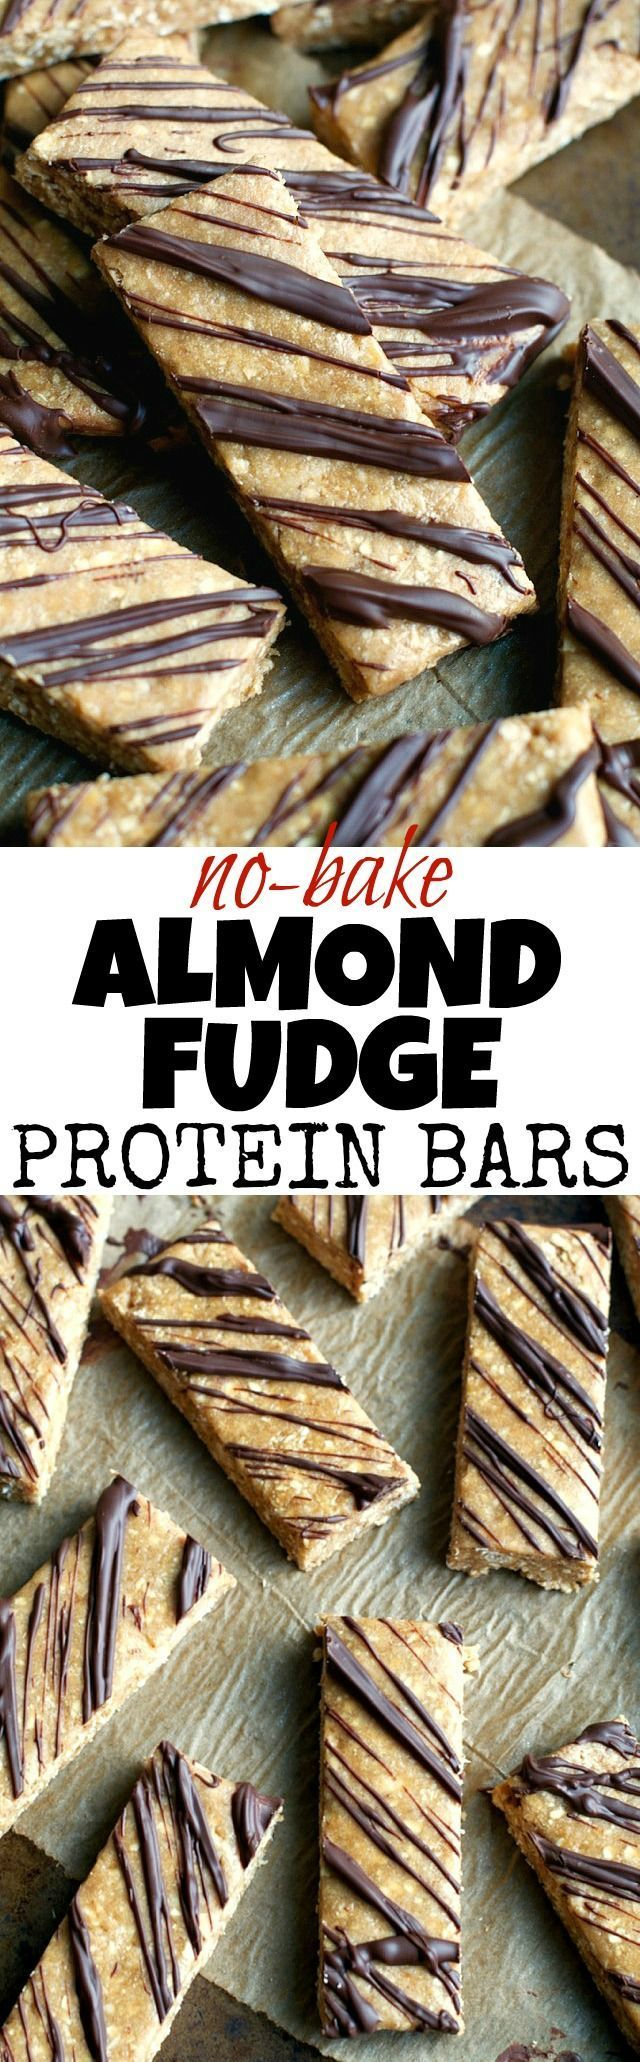 Give store-bought protein bars a run for their money with these soft and fudgy No Bake Almond Fudge Protein Bars! They're gluten-free, refined-sugar-free, vegan, and make a delicious healthy snack! | runningwithspoons... #healthy #snack #recipe